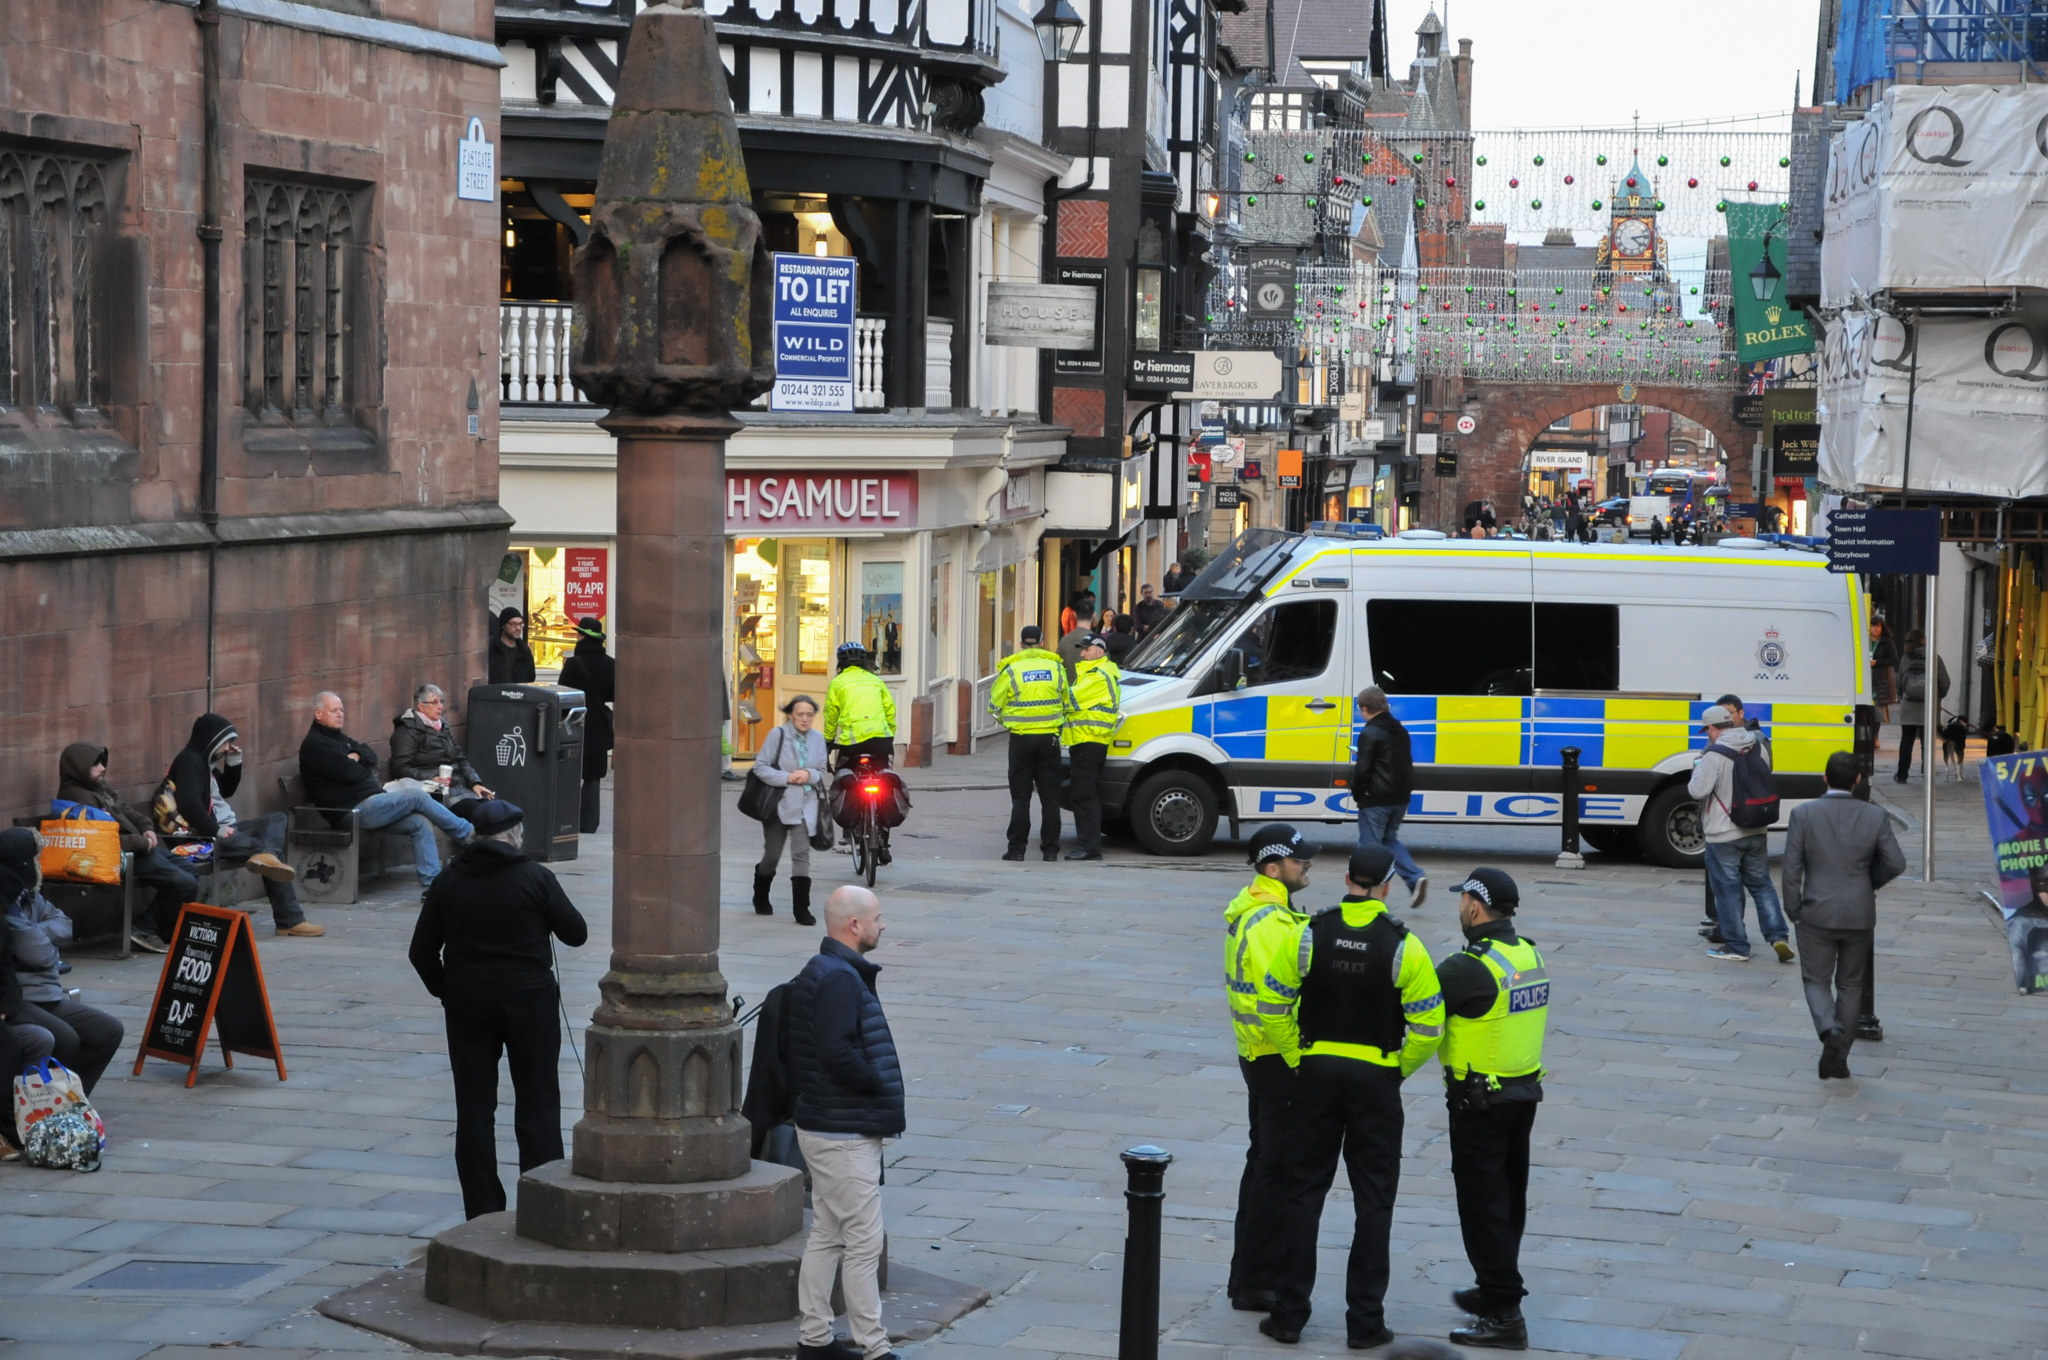 Cheshire Police officers on patrol on Eastgate Street, Chester, in the build-up to last November's derby match.